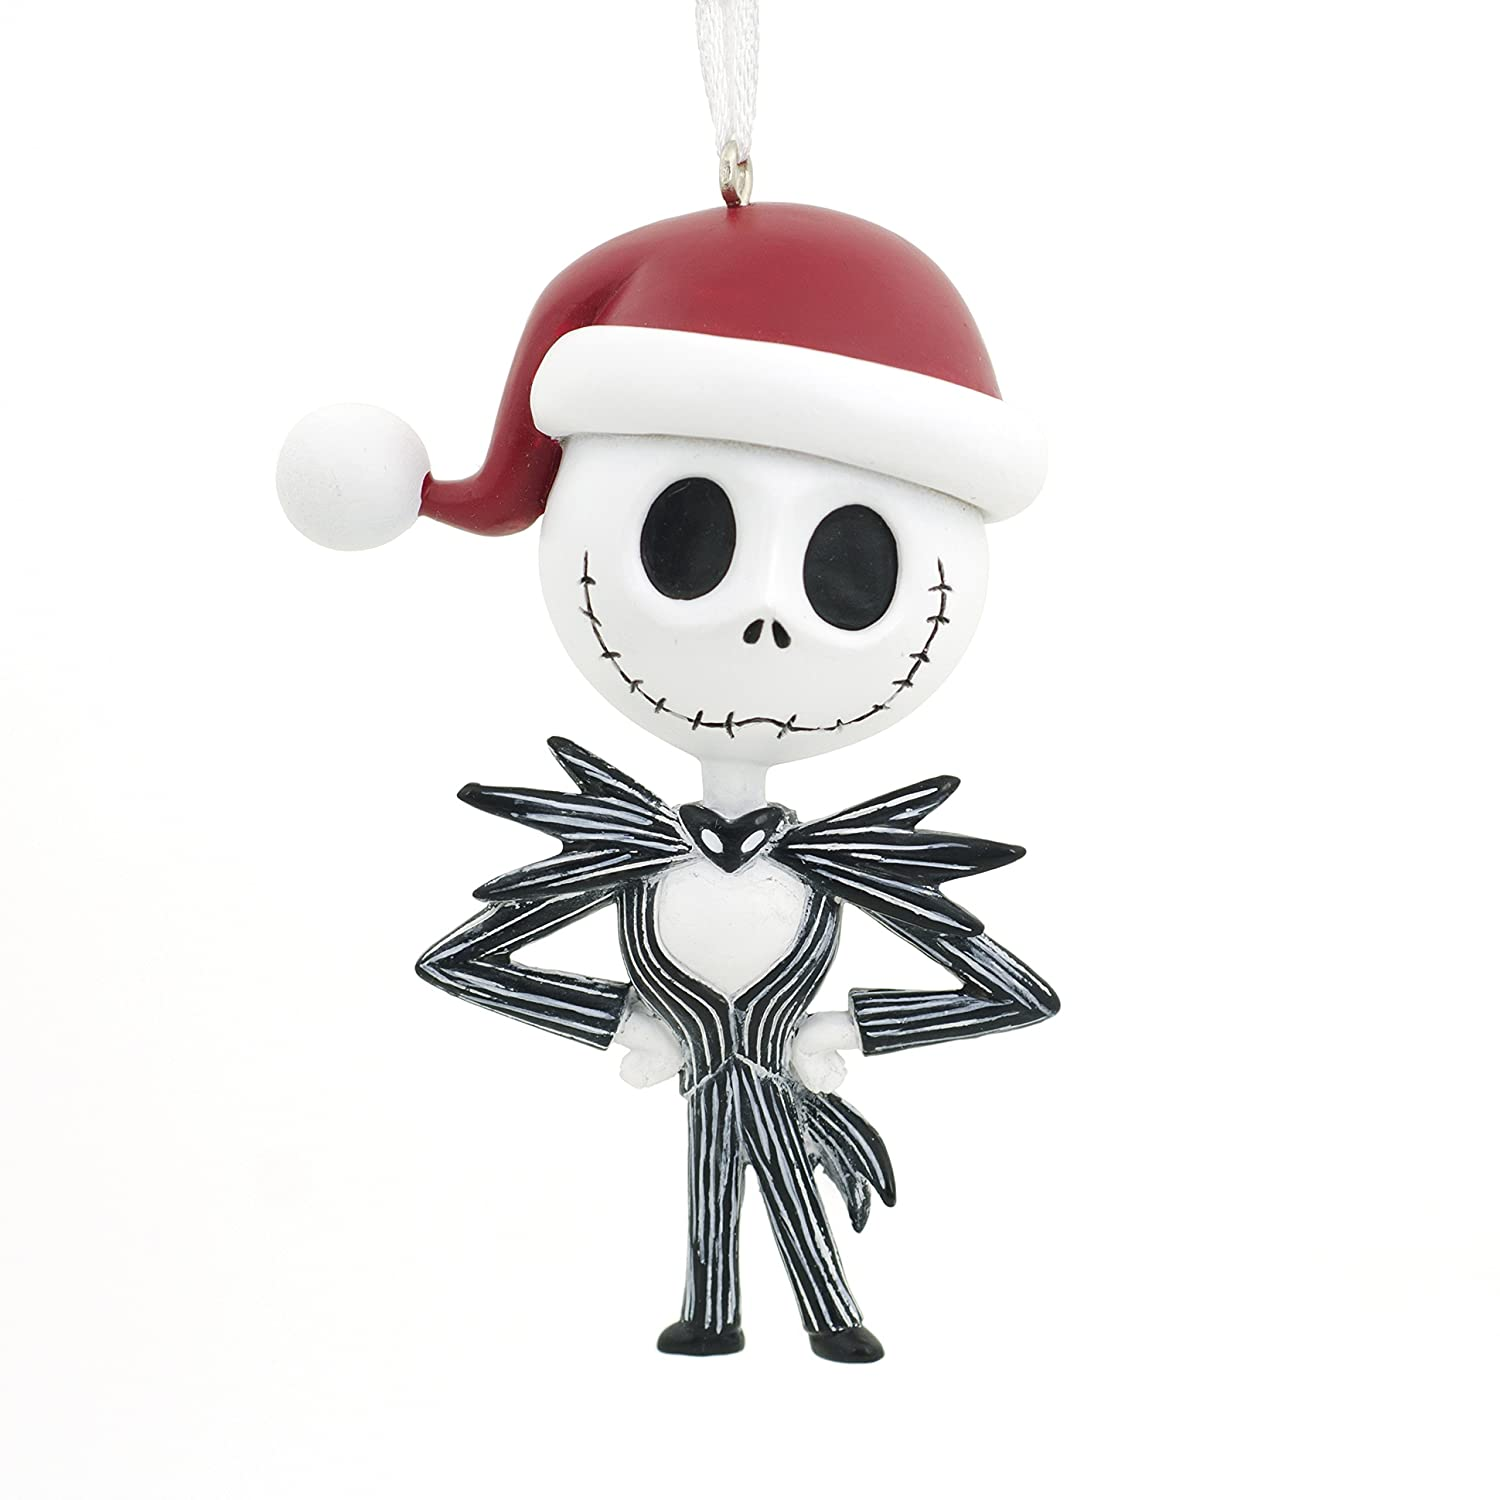 Amazon.com: Hallmark Christmas Ornament Disney Nightmare Before ...